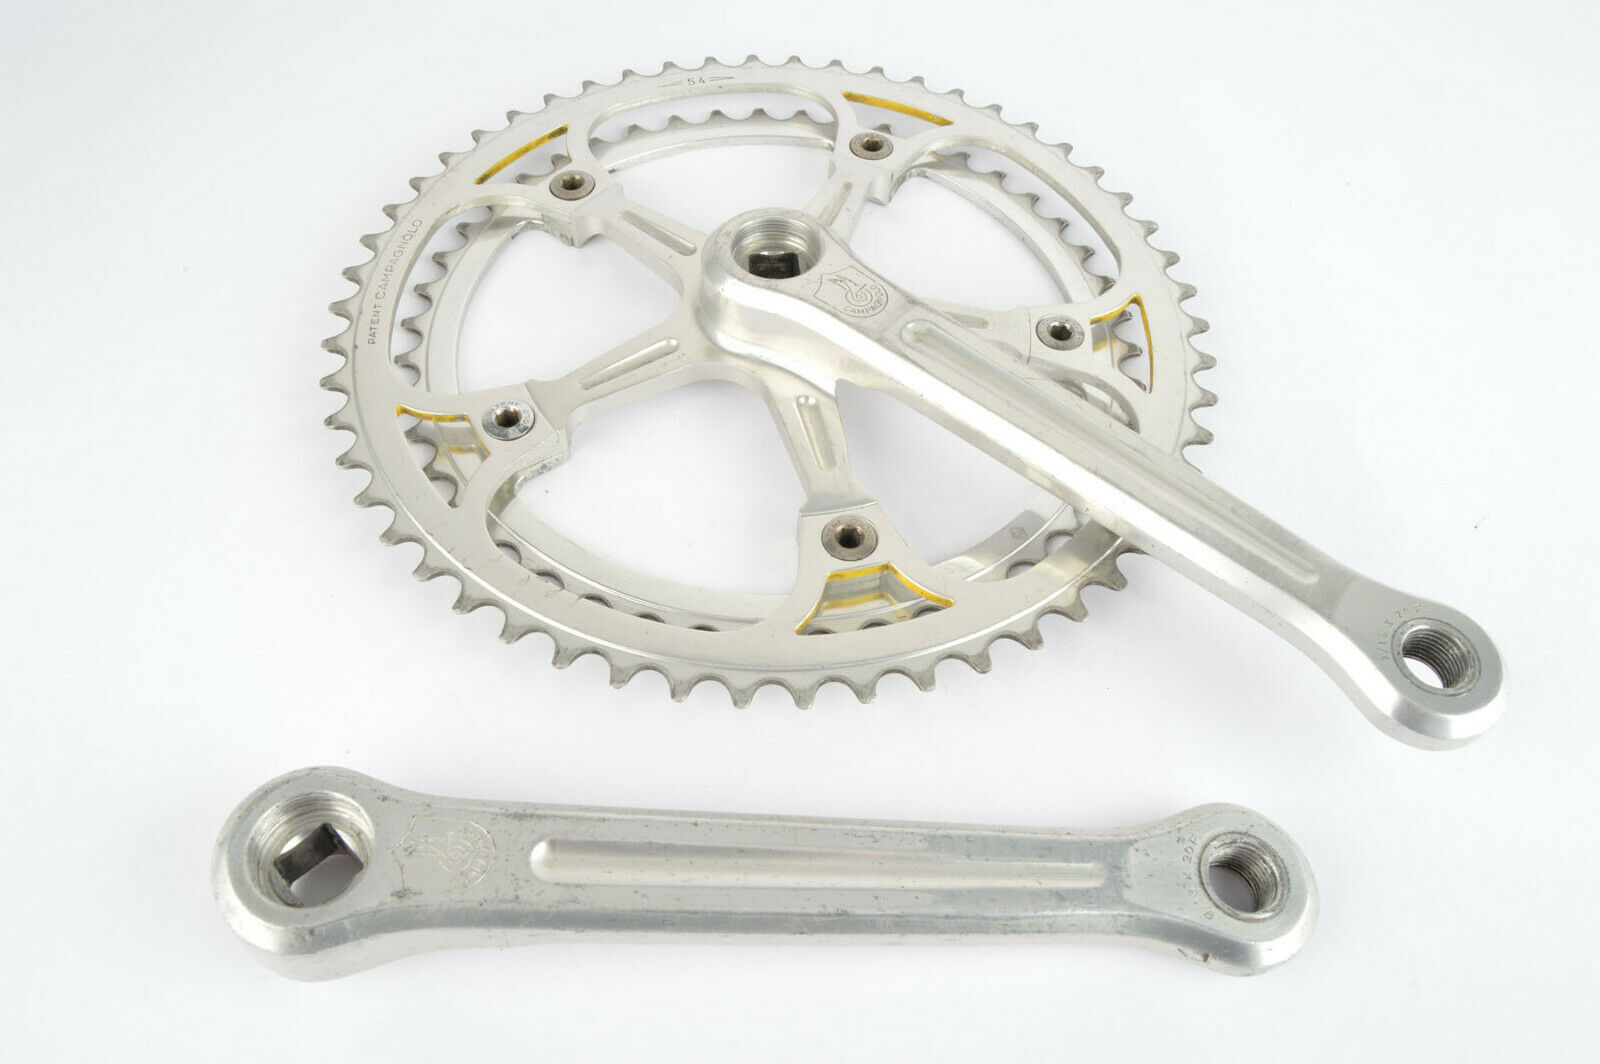 Campagnolo Super Record  A Crankset with 46 54 teeth and 170mm length